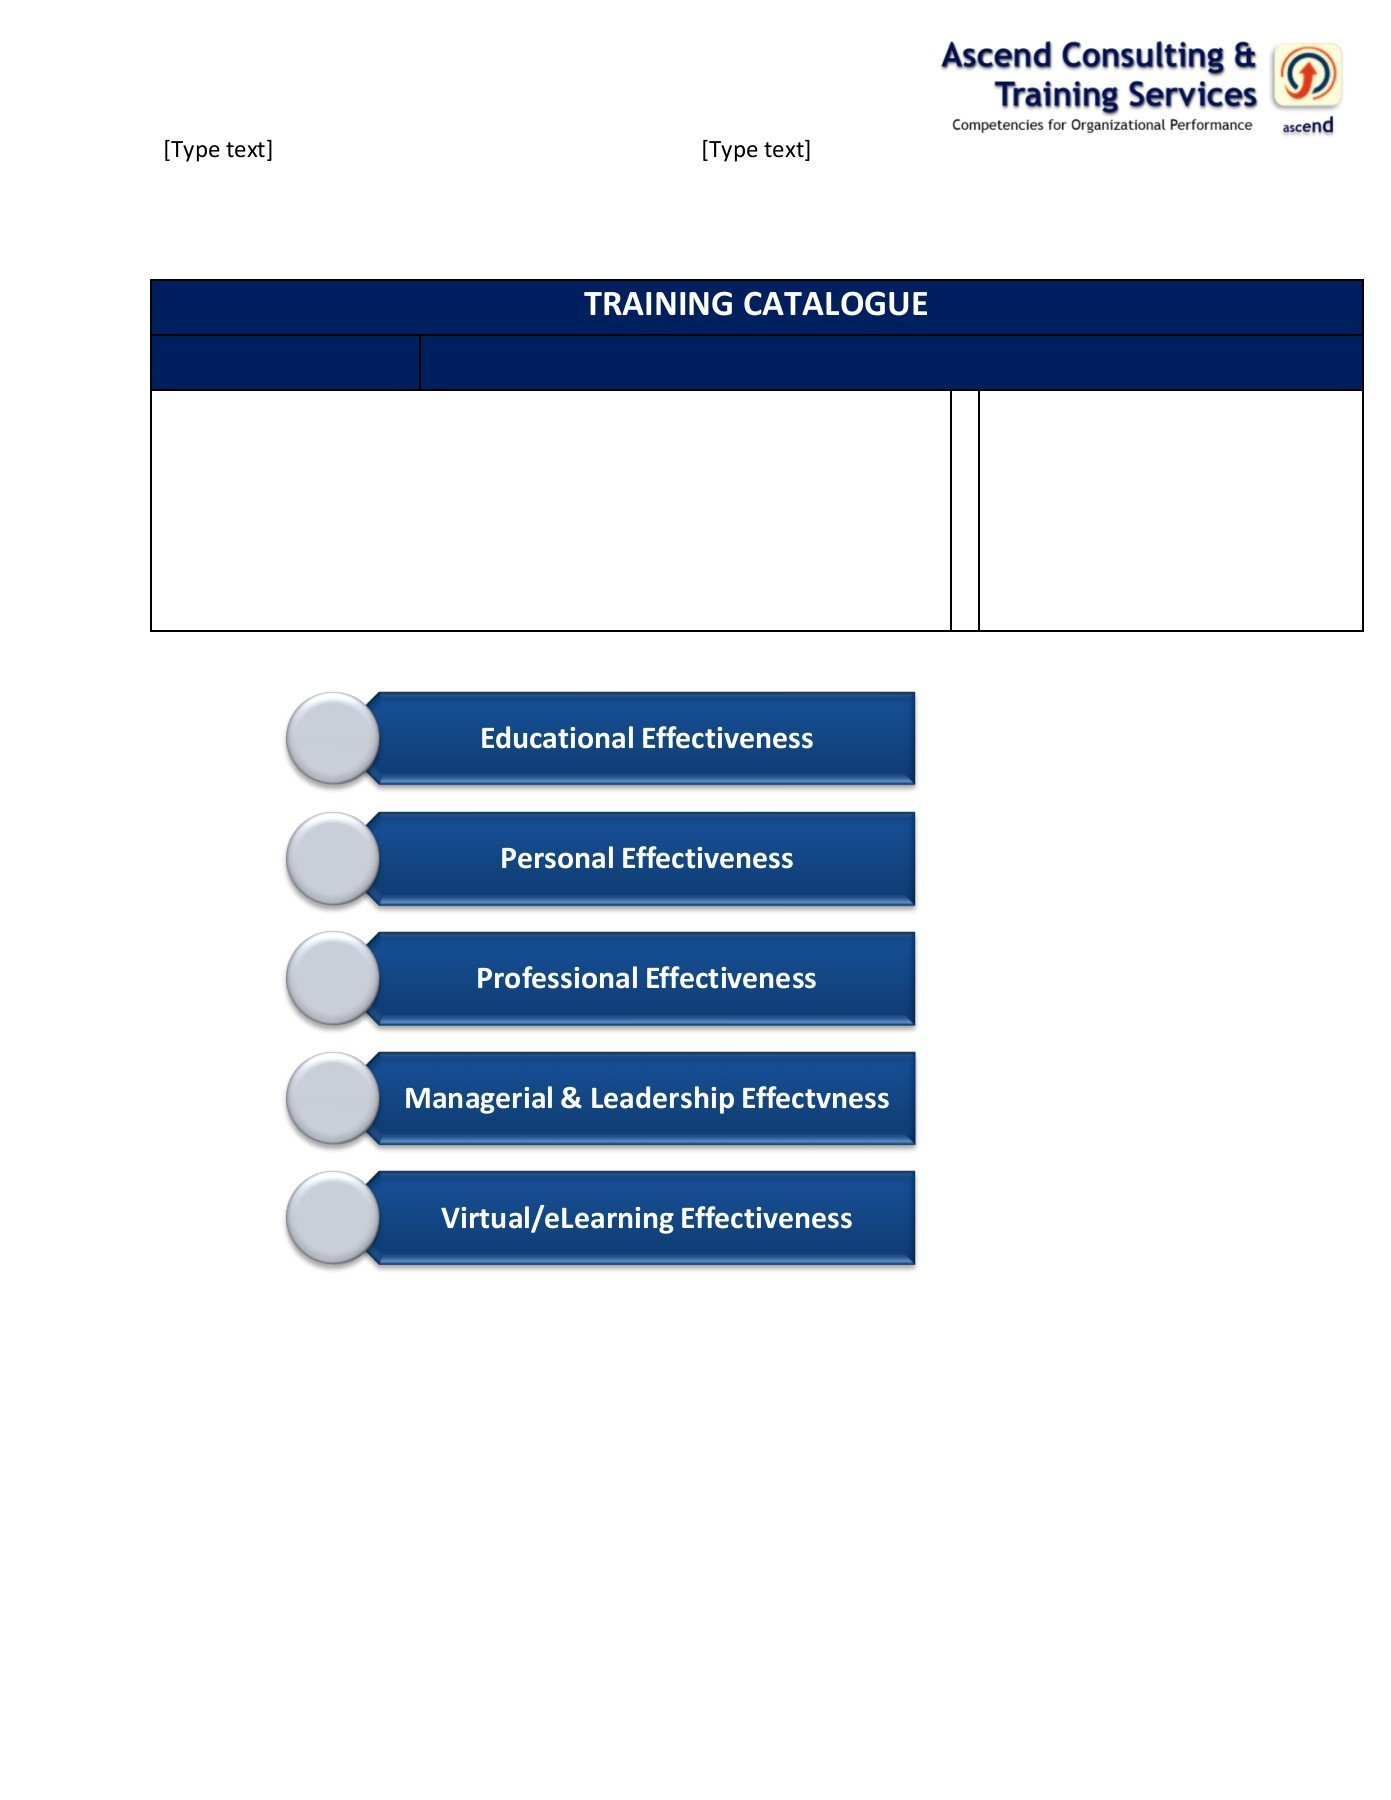 Training Catalogue Template